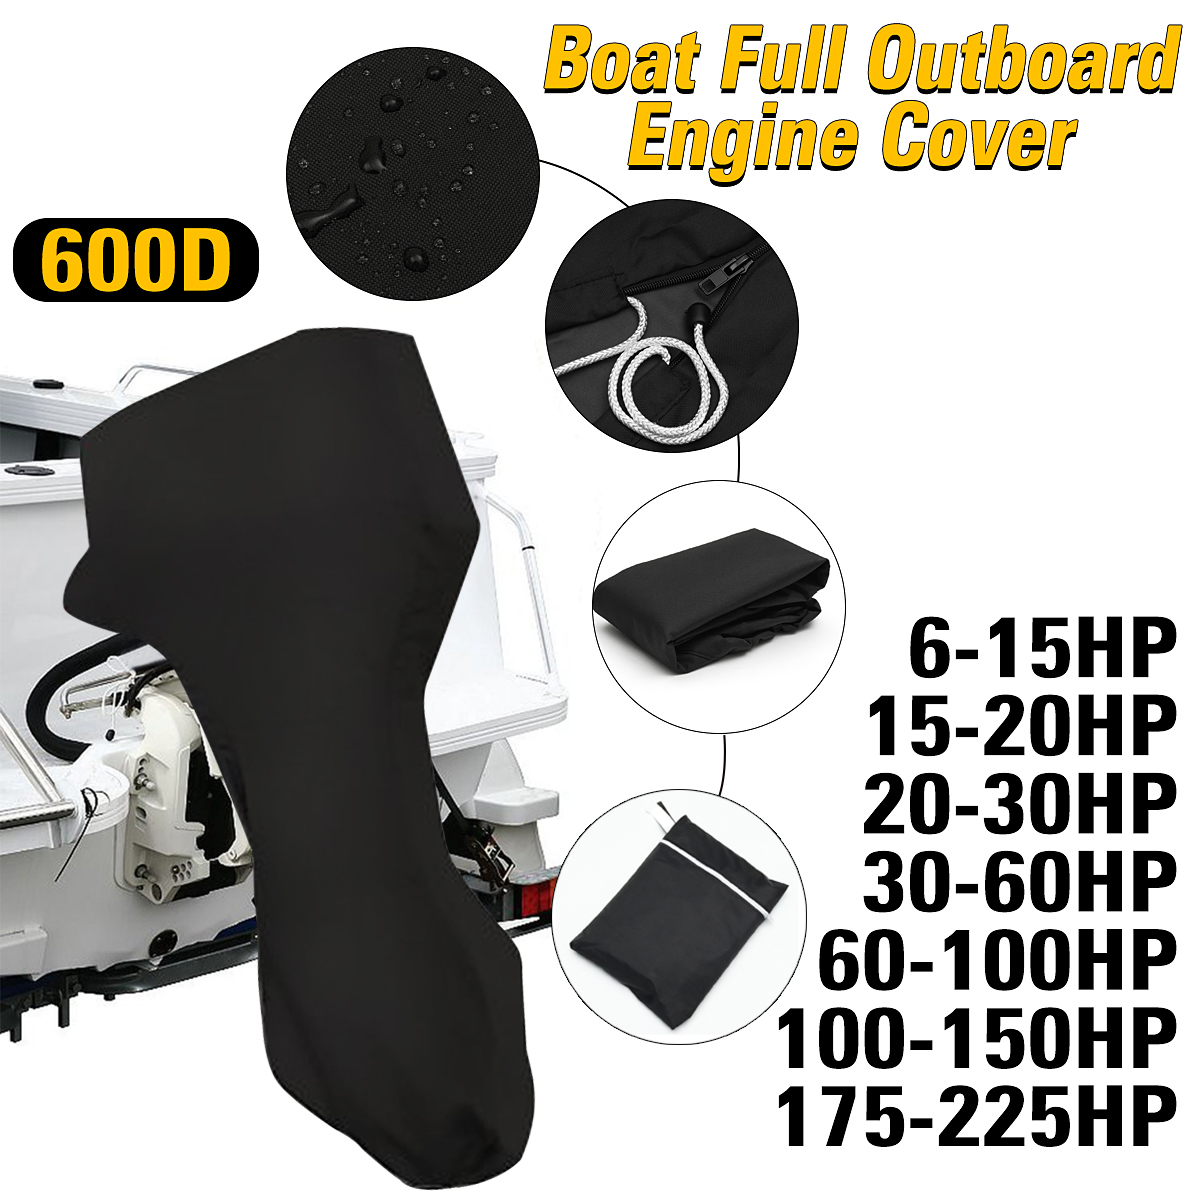 600D 6-225HP Boat Full Motor Cover Outboard Engine Protector for 6-225HP Boat Motors Black Waterproof600D 6-225HP Boat Full Motor Cover Outboard Engine Protector for 6-225HP Boat Motors Black Waterproof